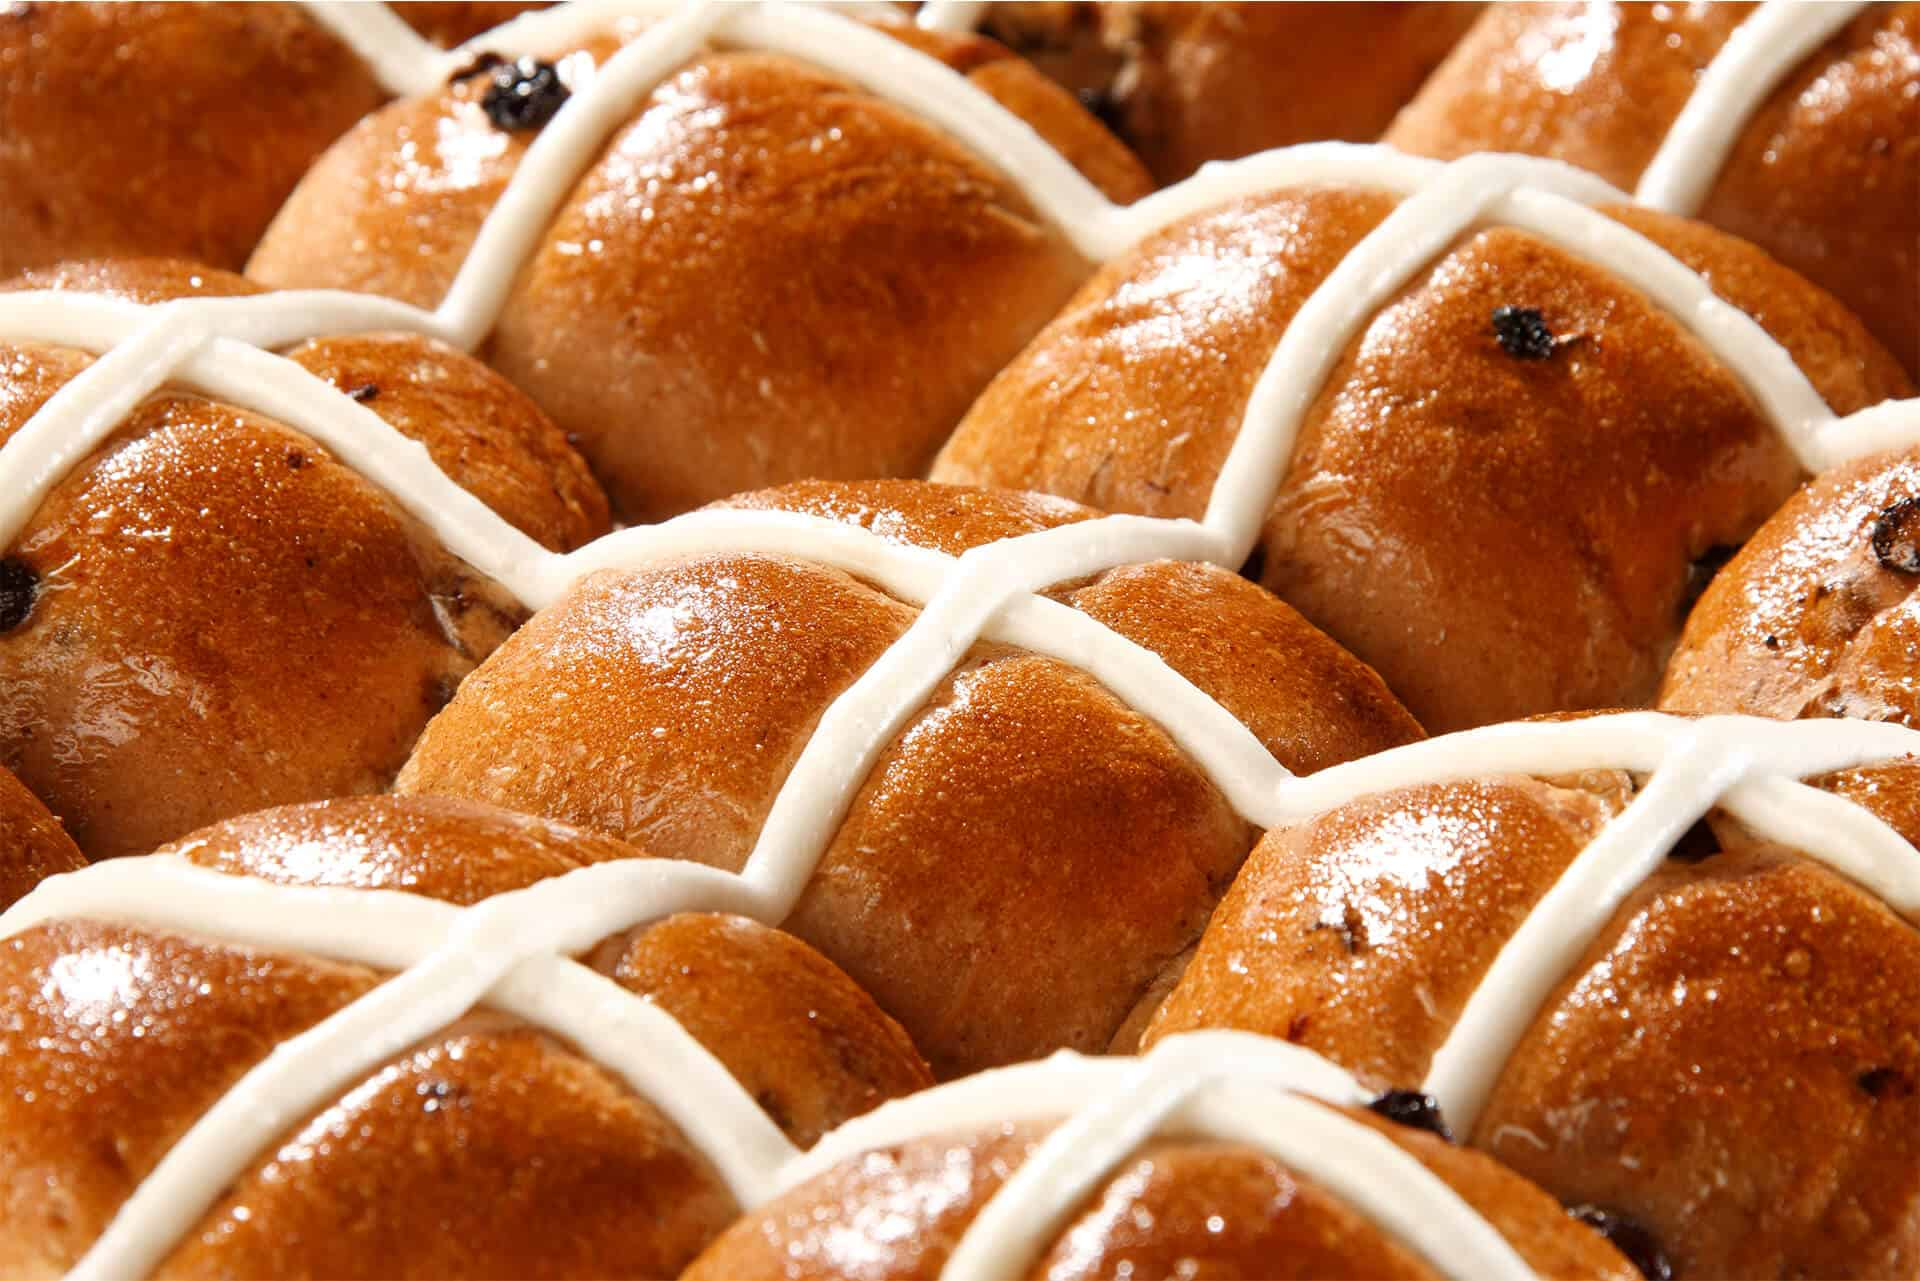 TASTE THE WORLD: Exploring the increasingly-international flavours of hot cross buns.